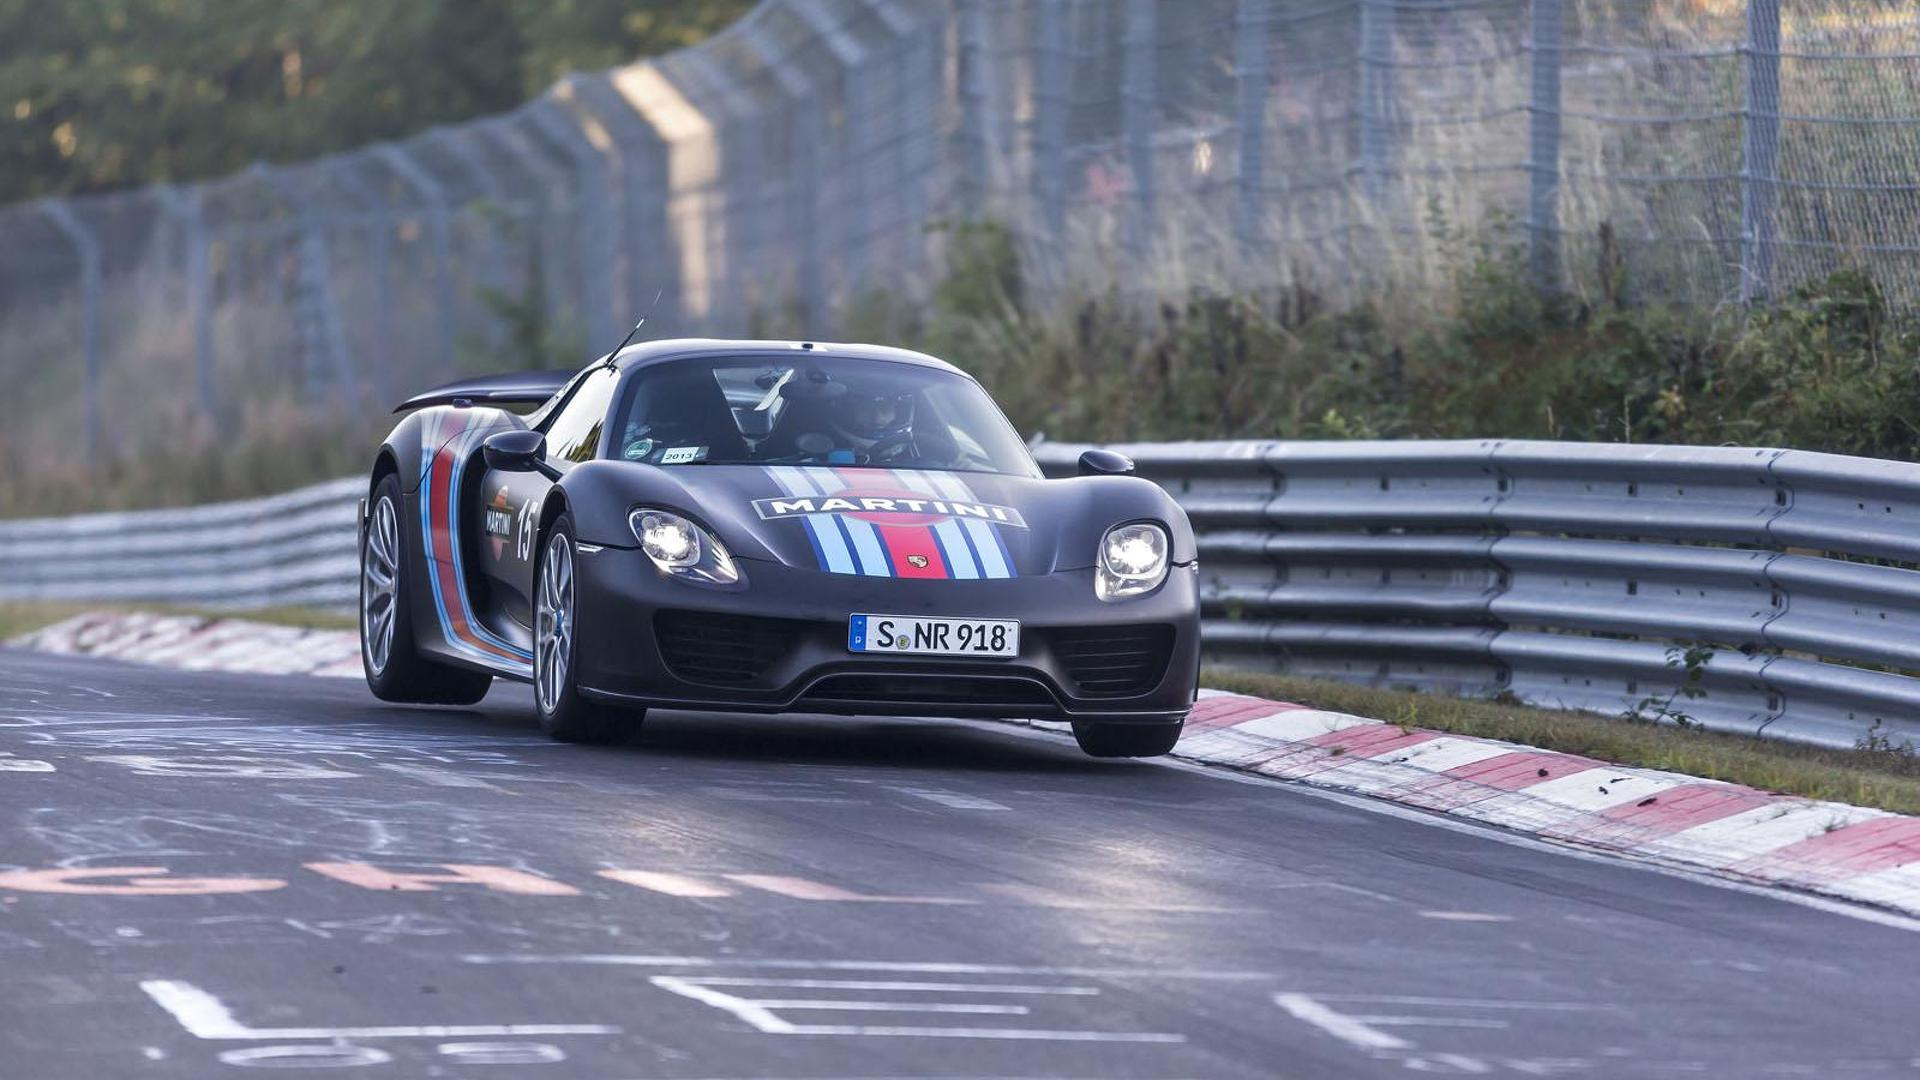 Nurburgring set to lift record ban